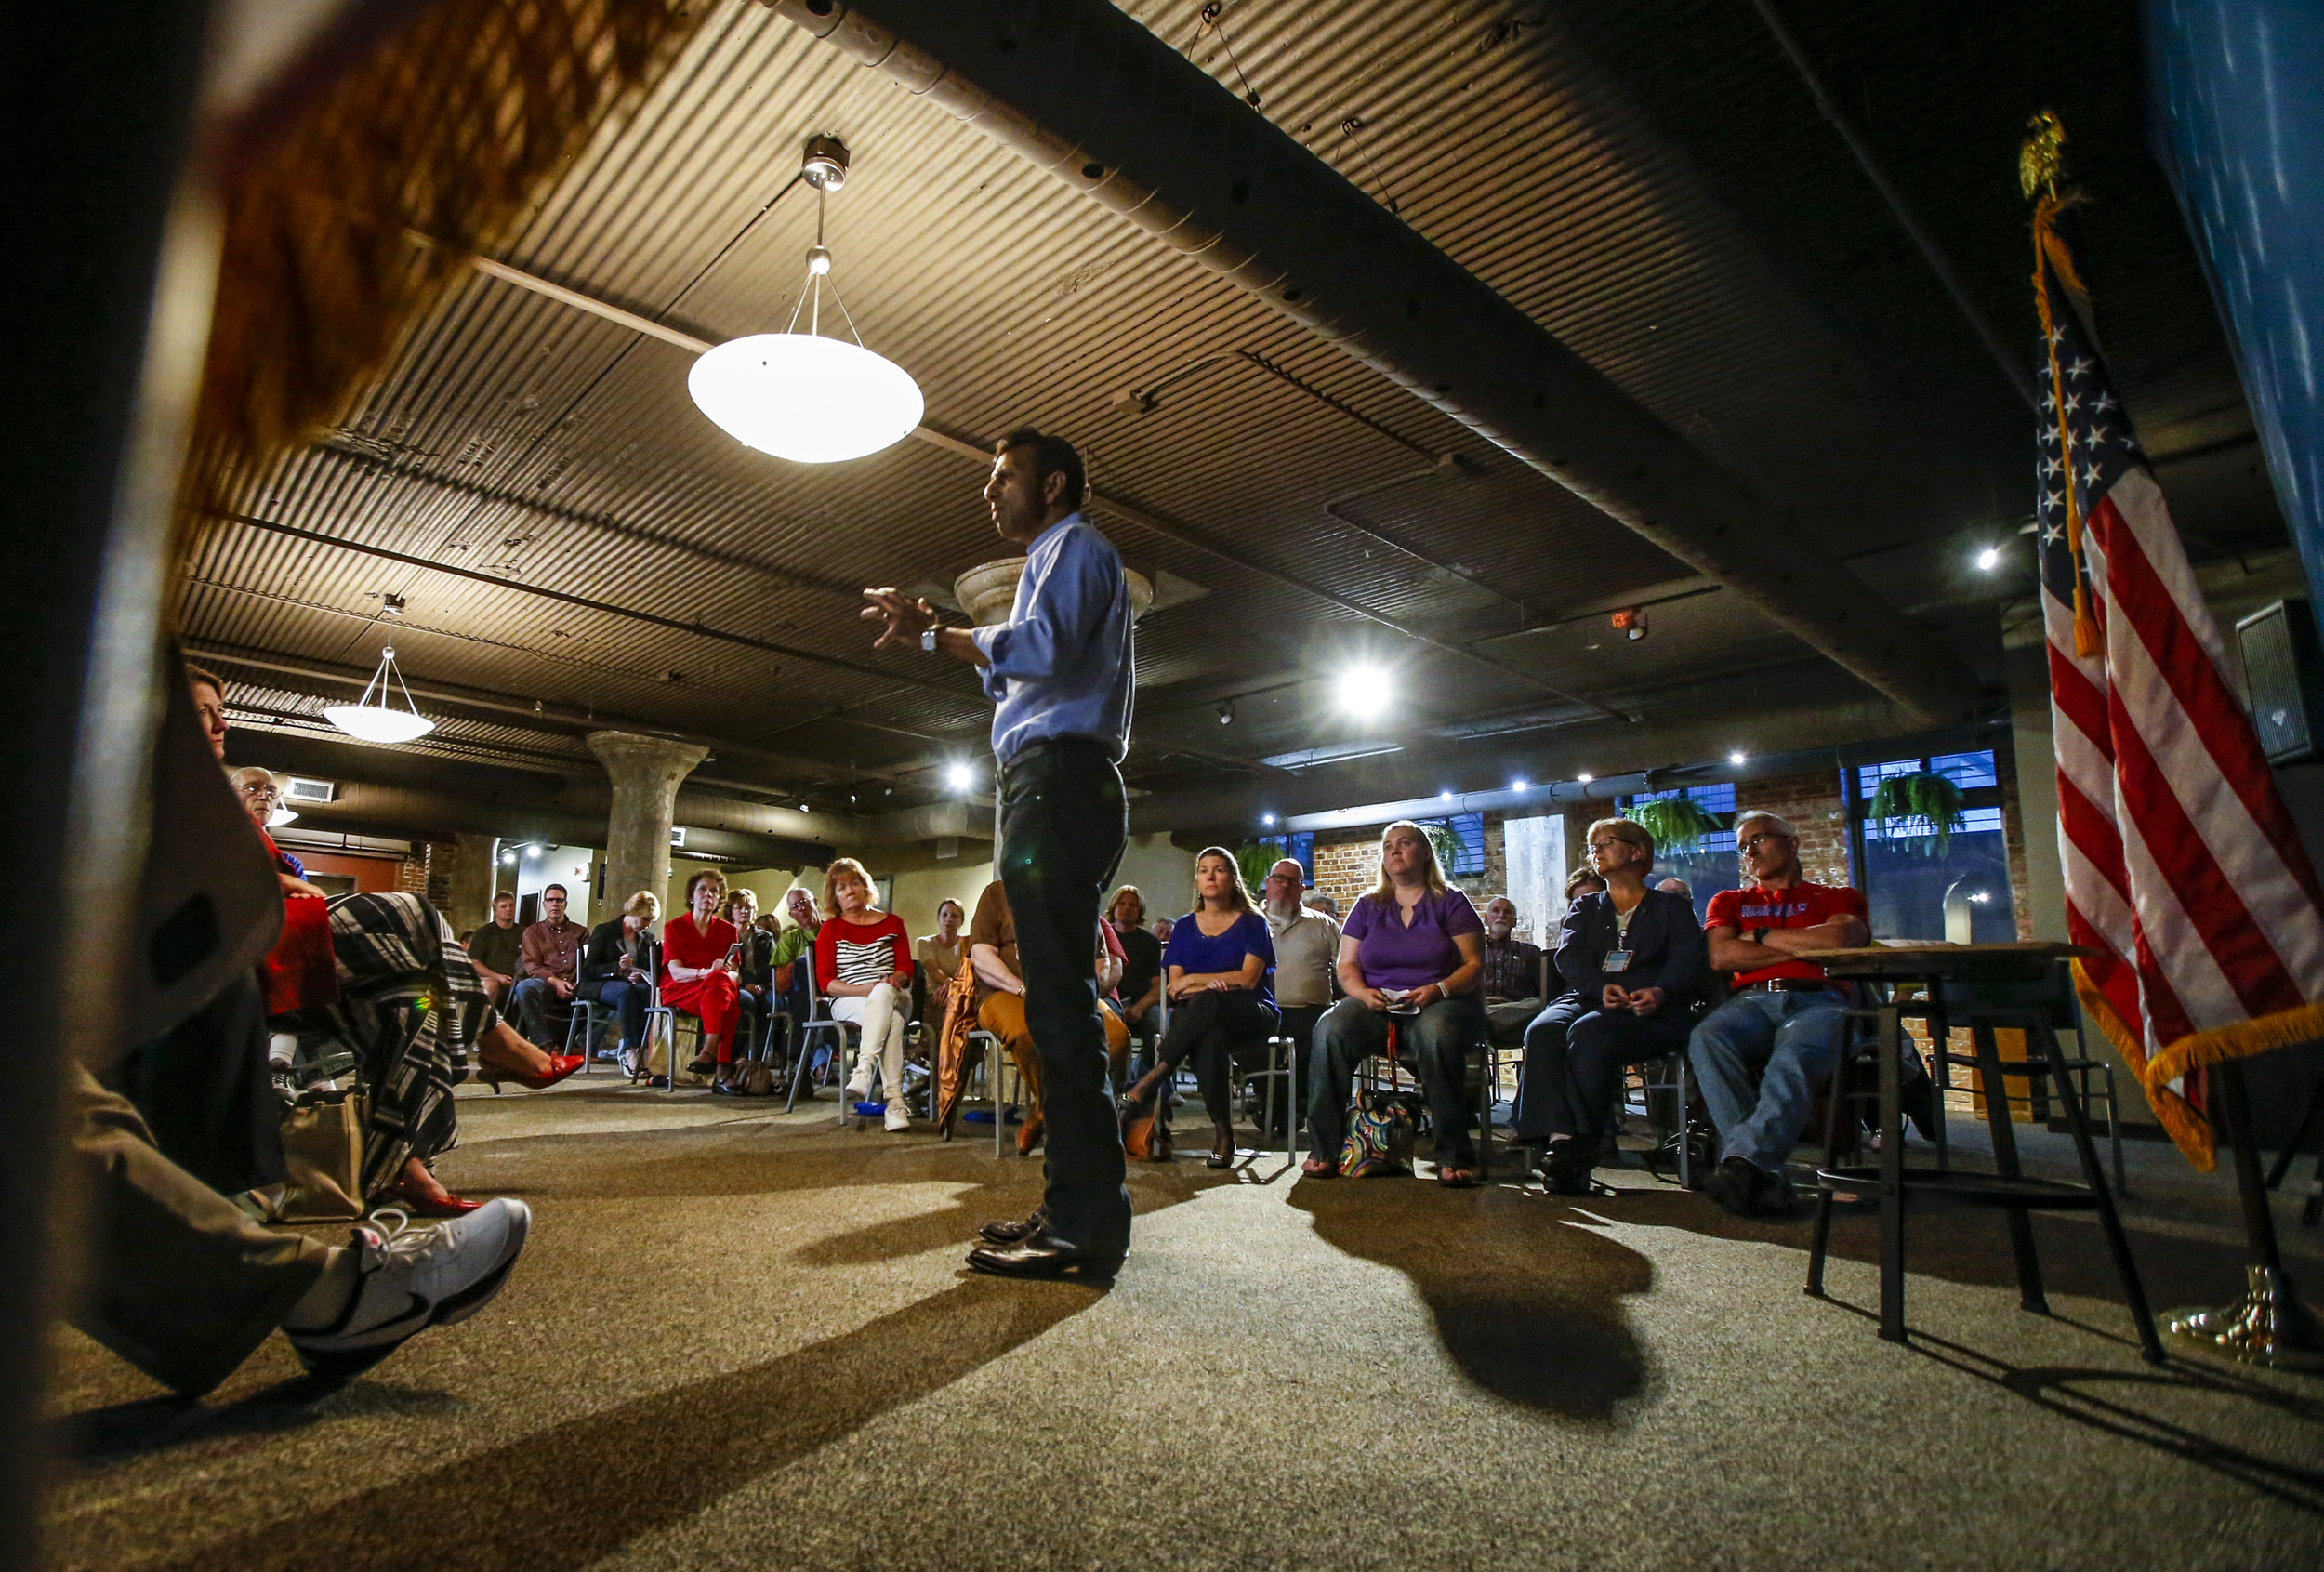 Presidential hopeful Bobby Jindal engages with members of the audience at the Shores Event Center in Cedar Rapids, Iowa, October 1, 2015. The Louisiana governor made a stop in Cedar Rapids to speak to a crowd of over 70 people and take questions from the crowd.